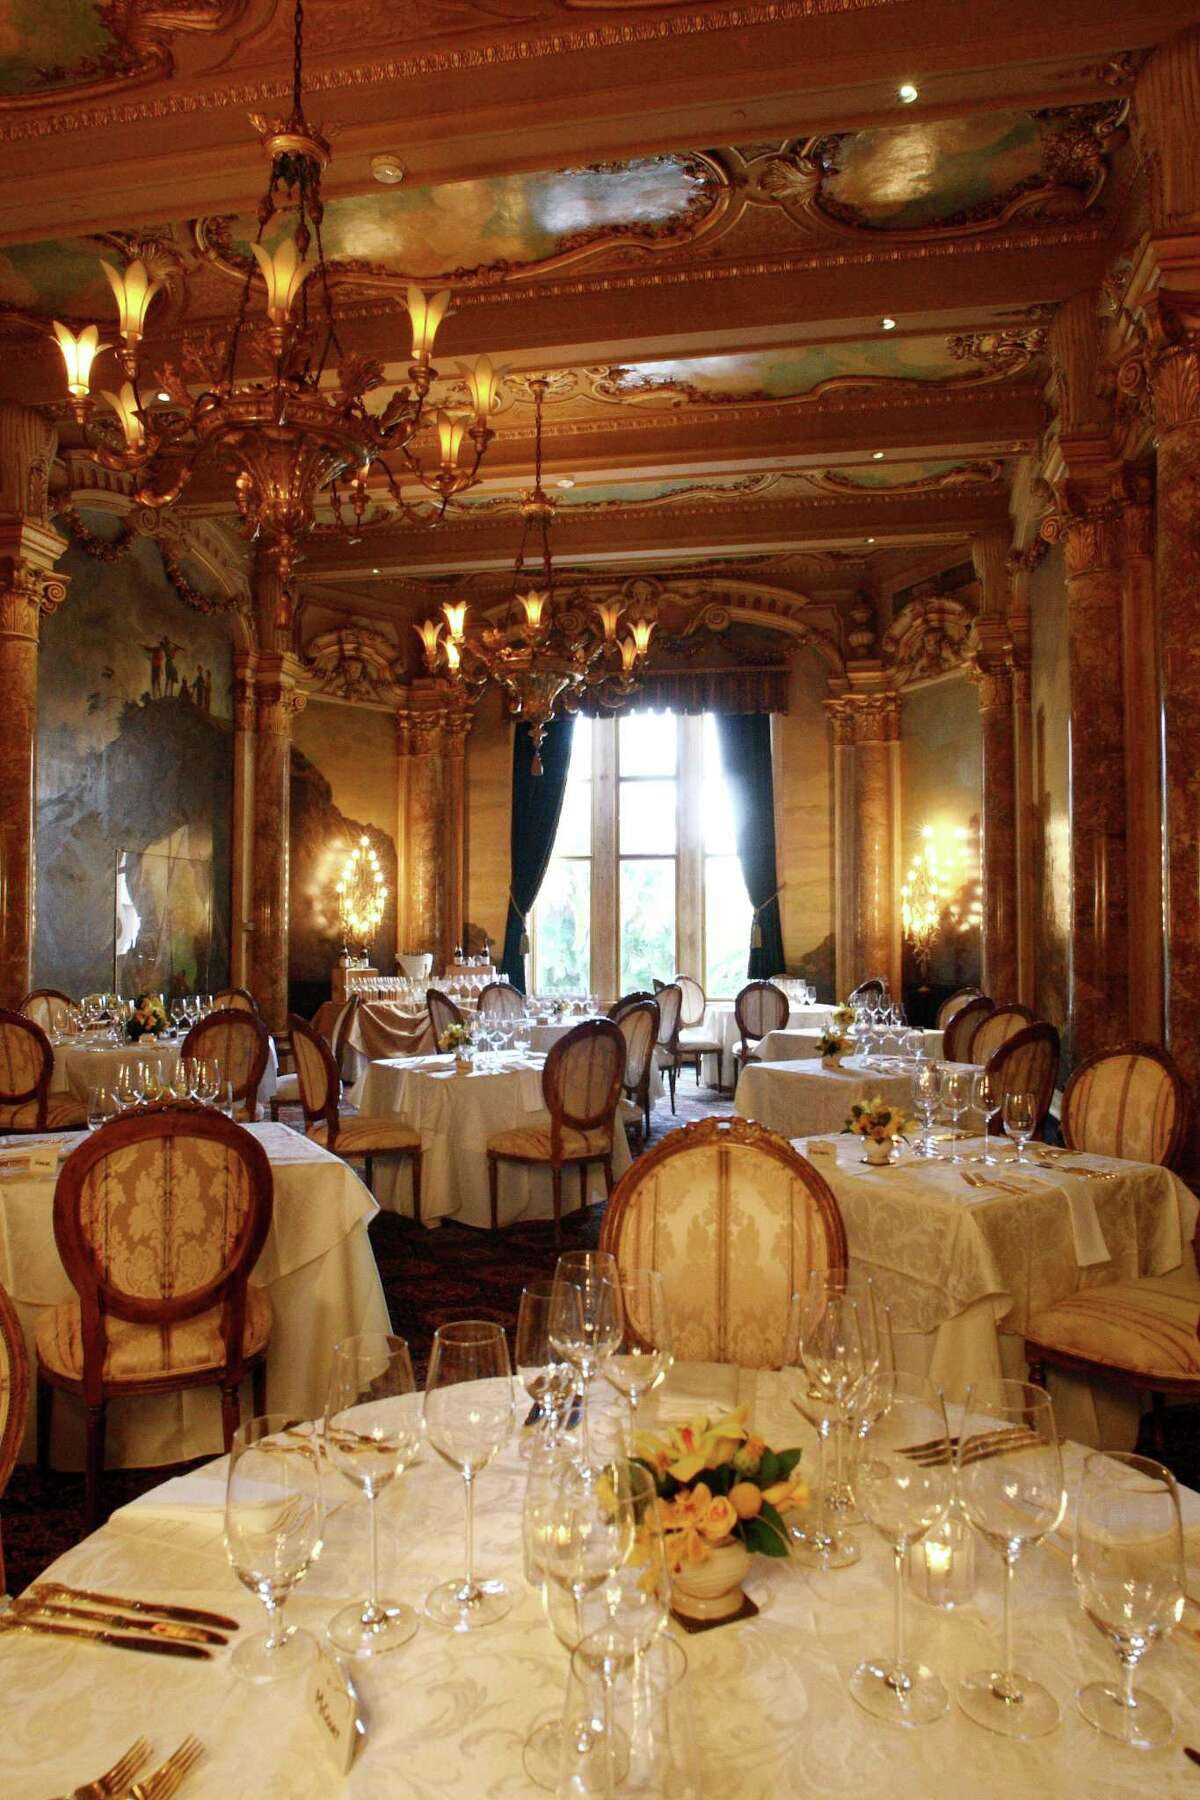 A section of the formal dining room in Mar-a-Lago.